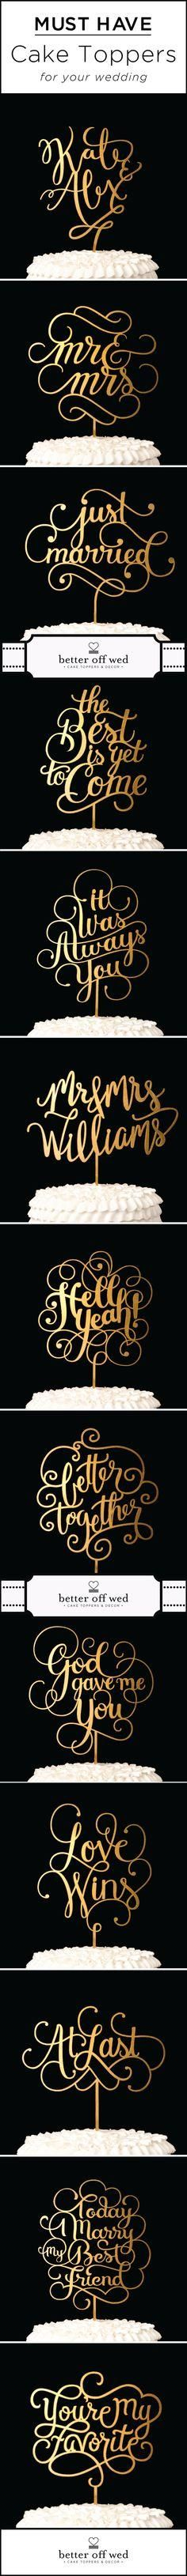 Must have wedding cake toppers for your big day!